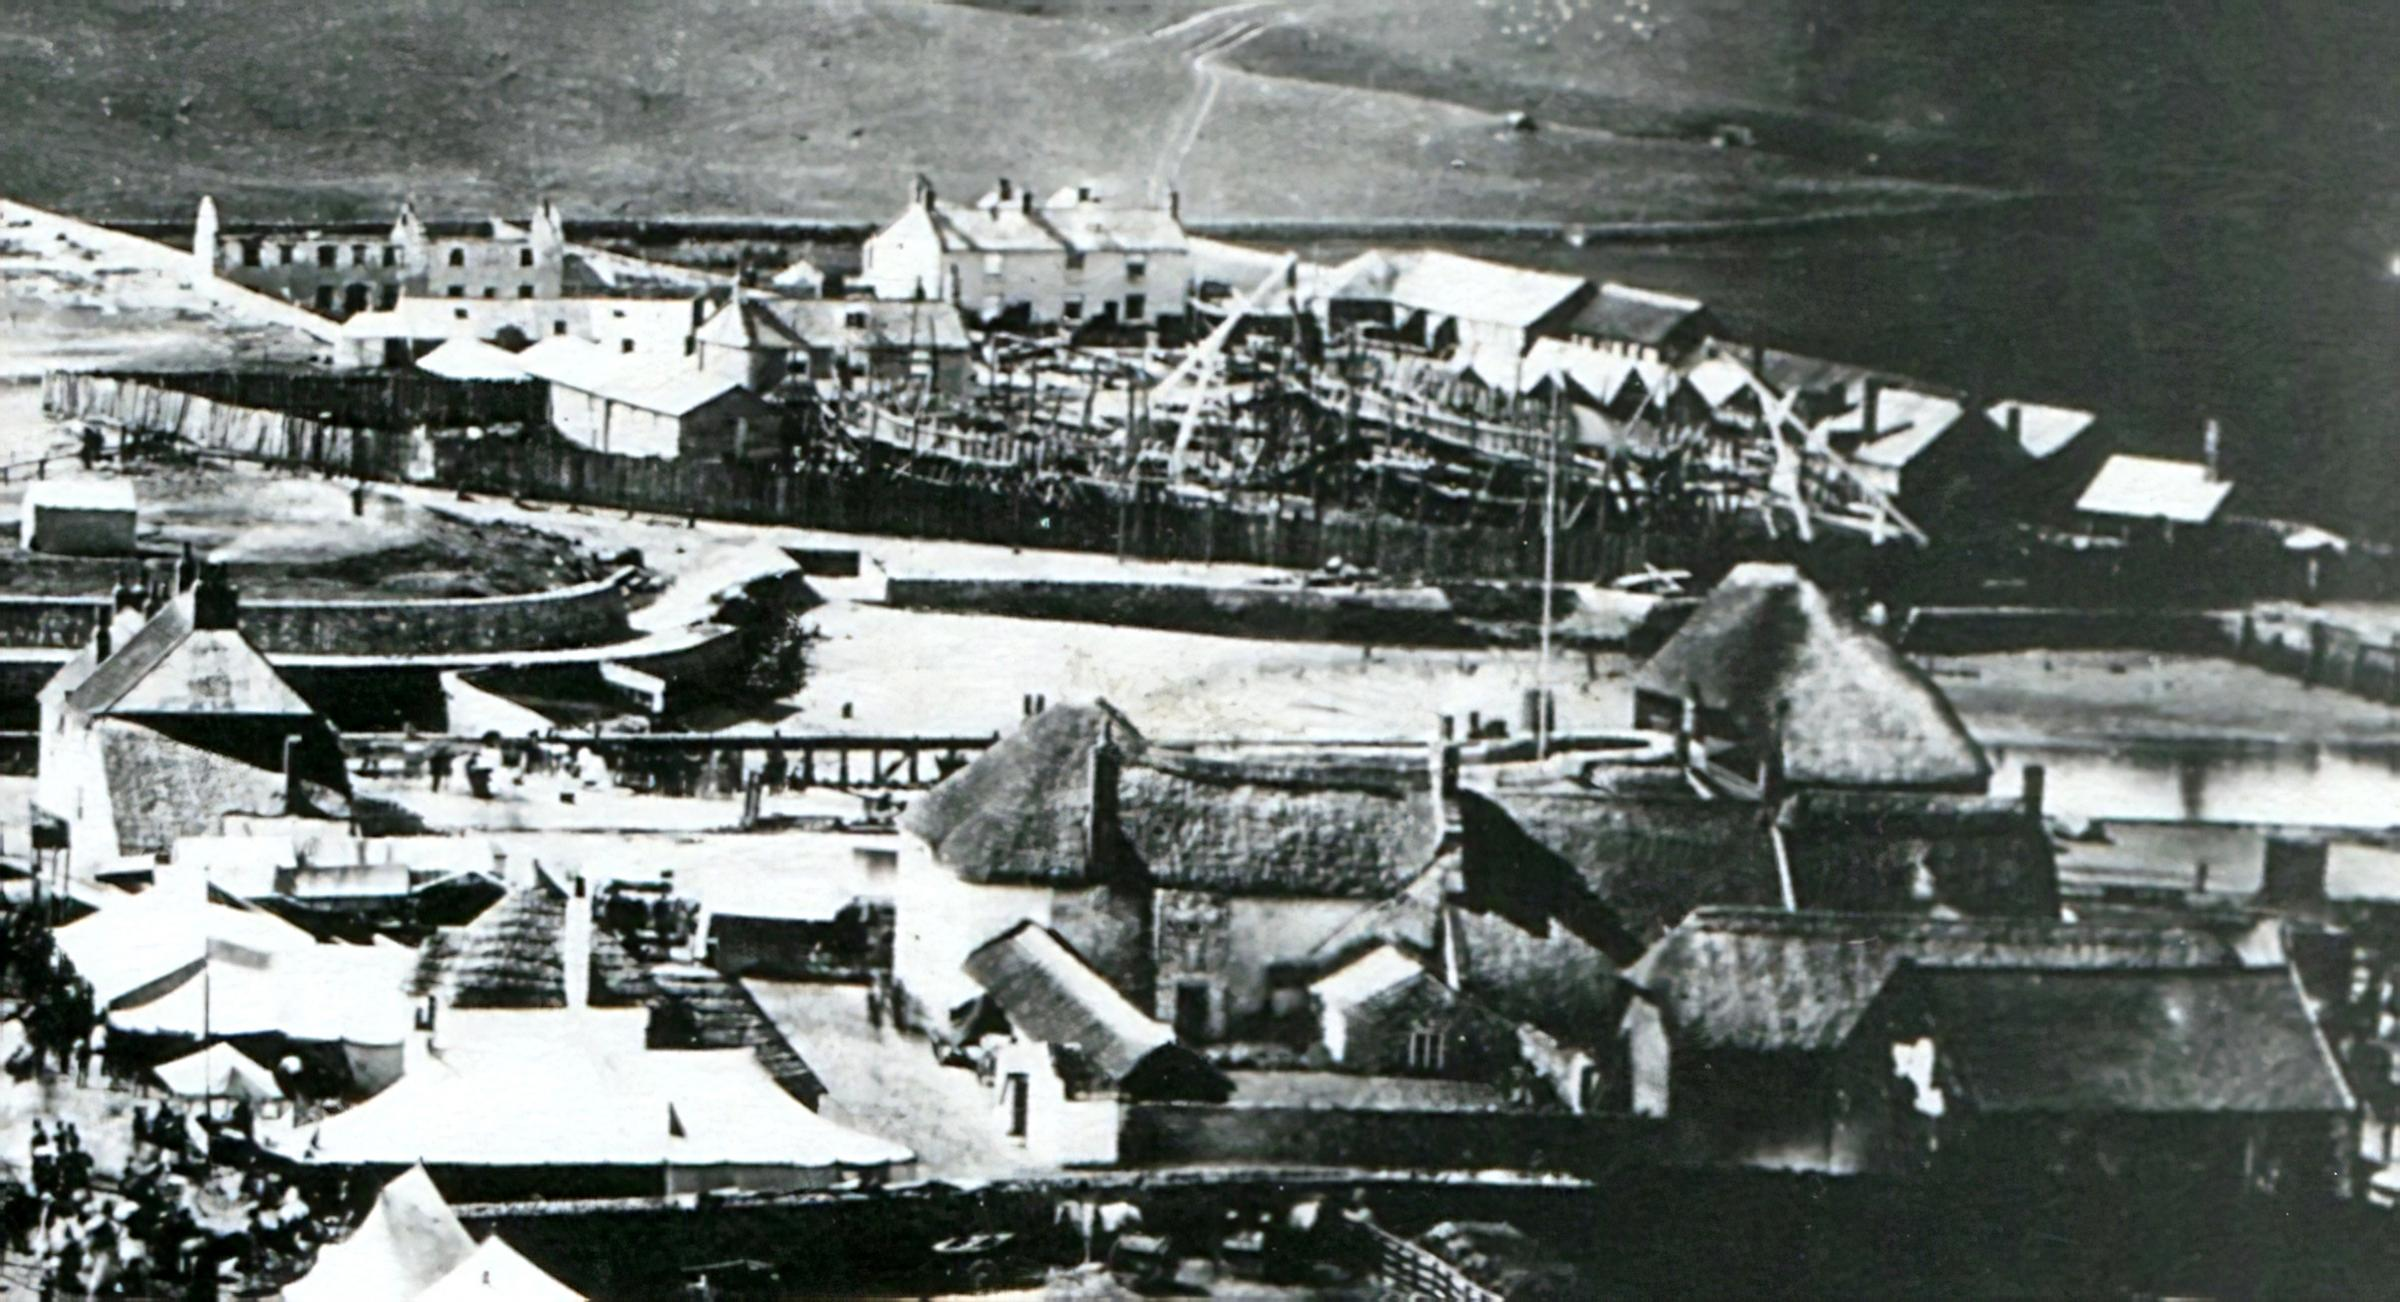 Take a look back at West Bay Harbour's shipbuilding past